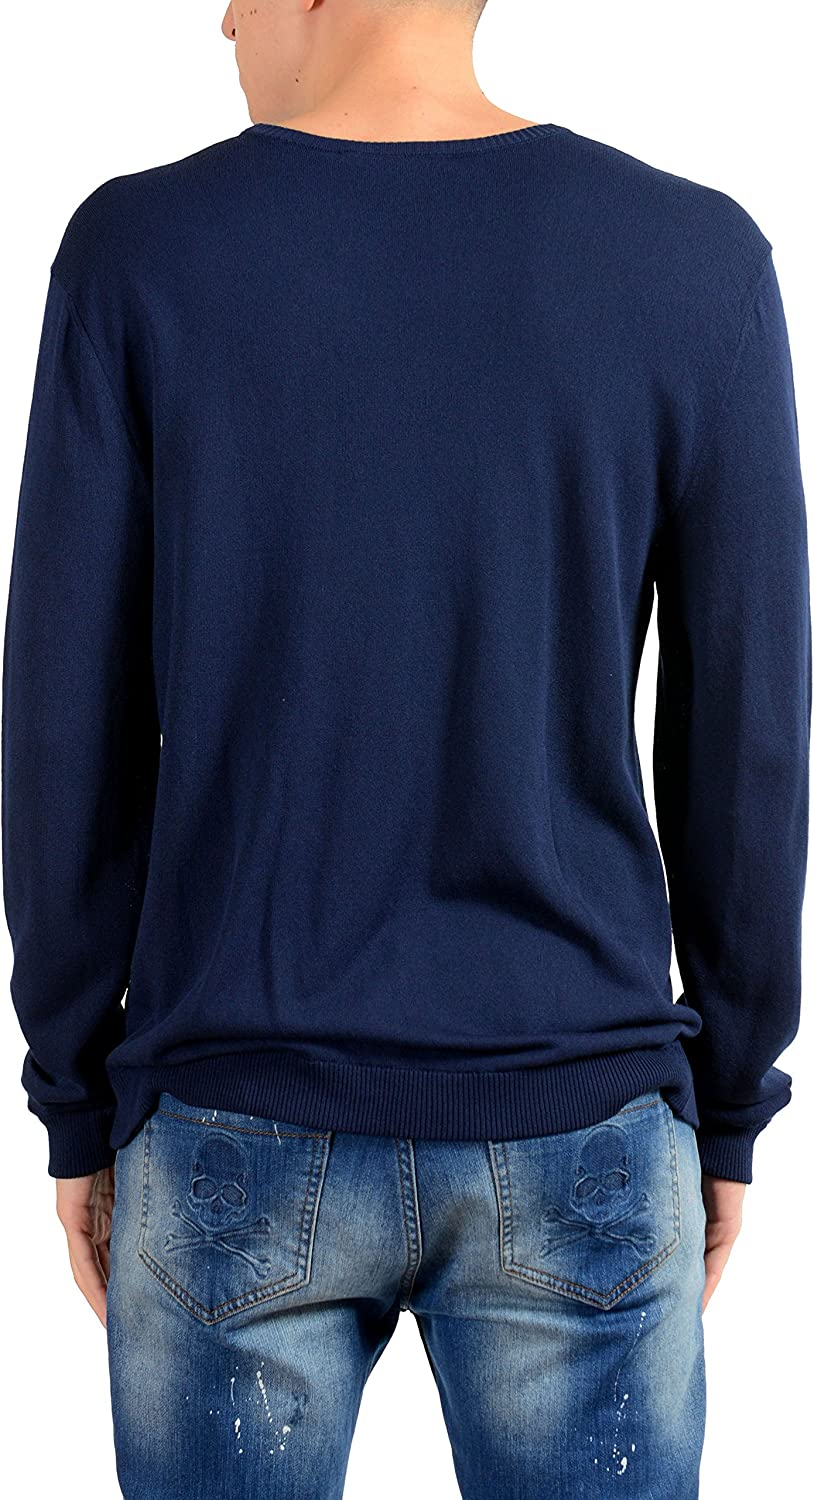 Dolce /& Gabbana Navy Knitted Mens Crewneck Sweater US S IT 48